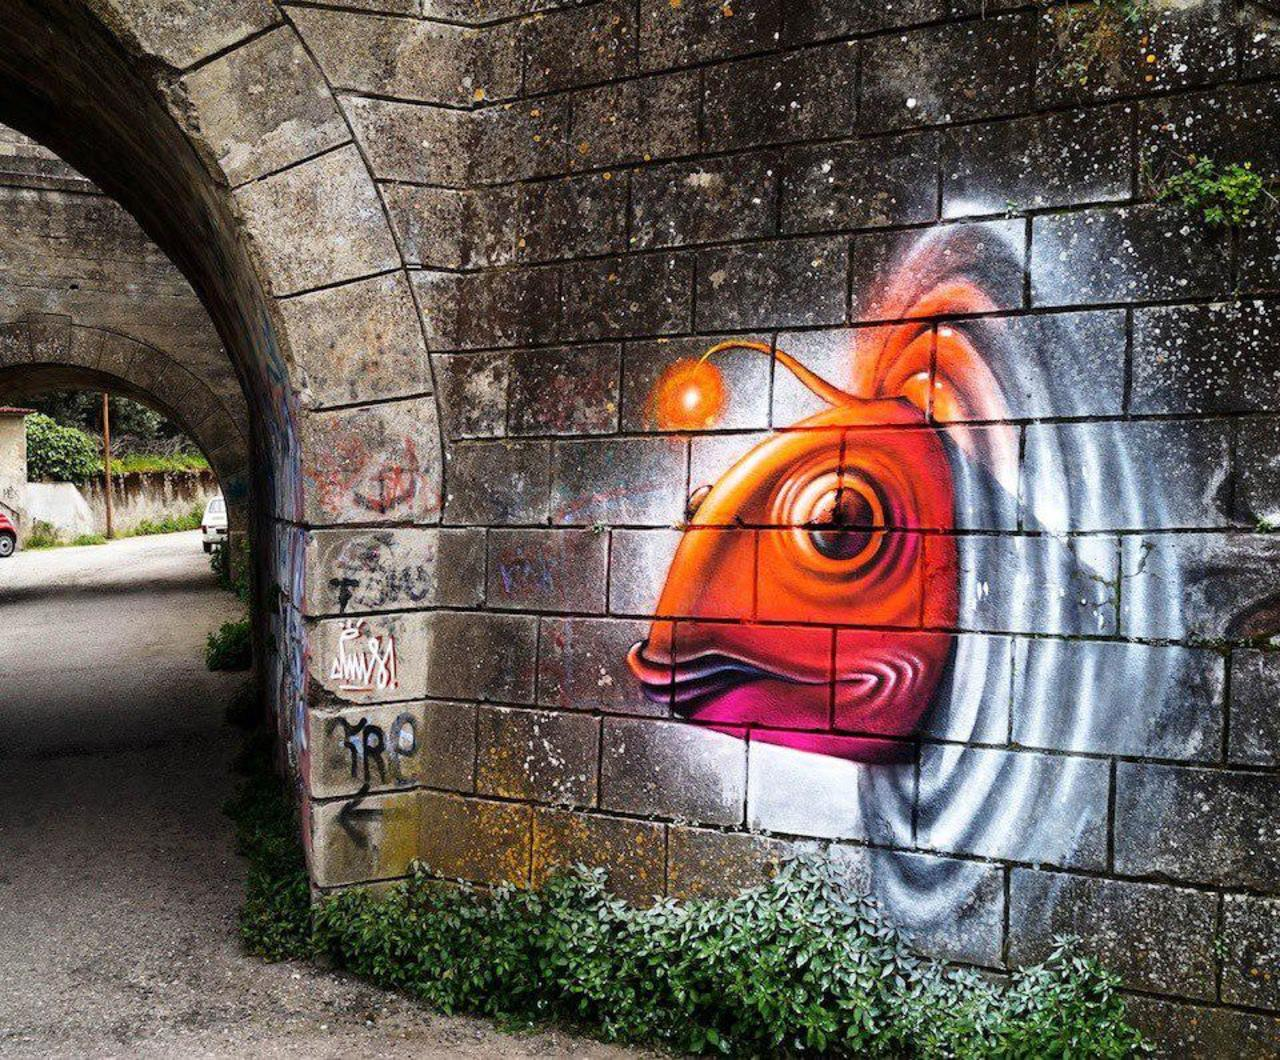 Cosmic fish from outer world. Discover more #streetart pieces: http://bit.ly/CosmicFish #graffiti https://t.co/JaBF8EKnhJ